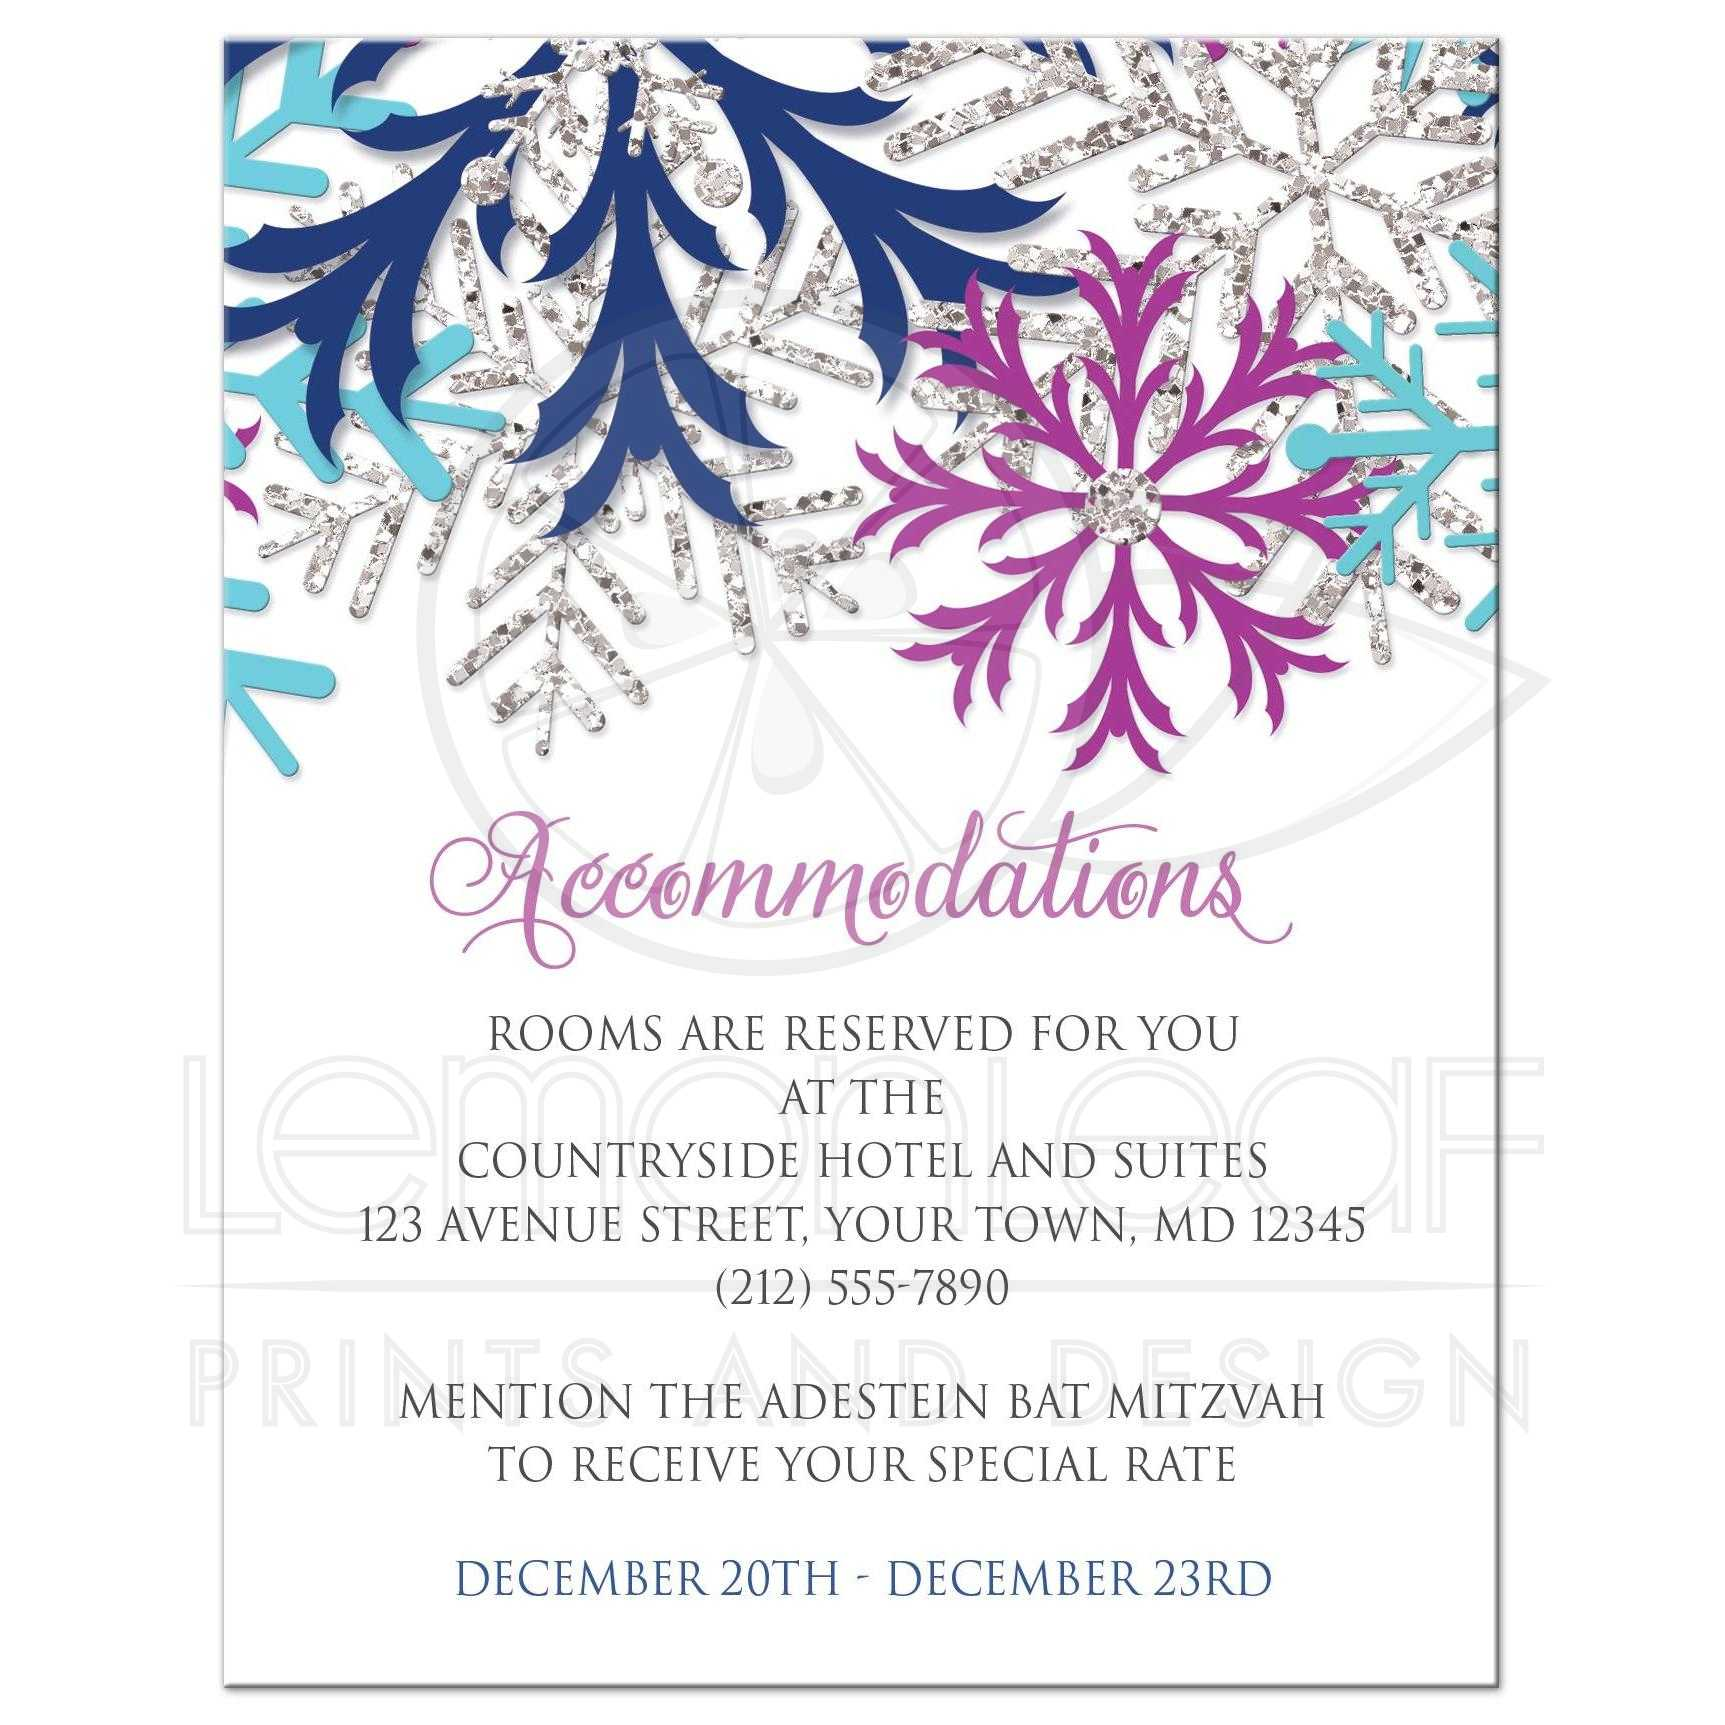 Accommodations Cards Turquoise Navy Orchid Silver Snowflake